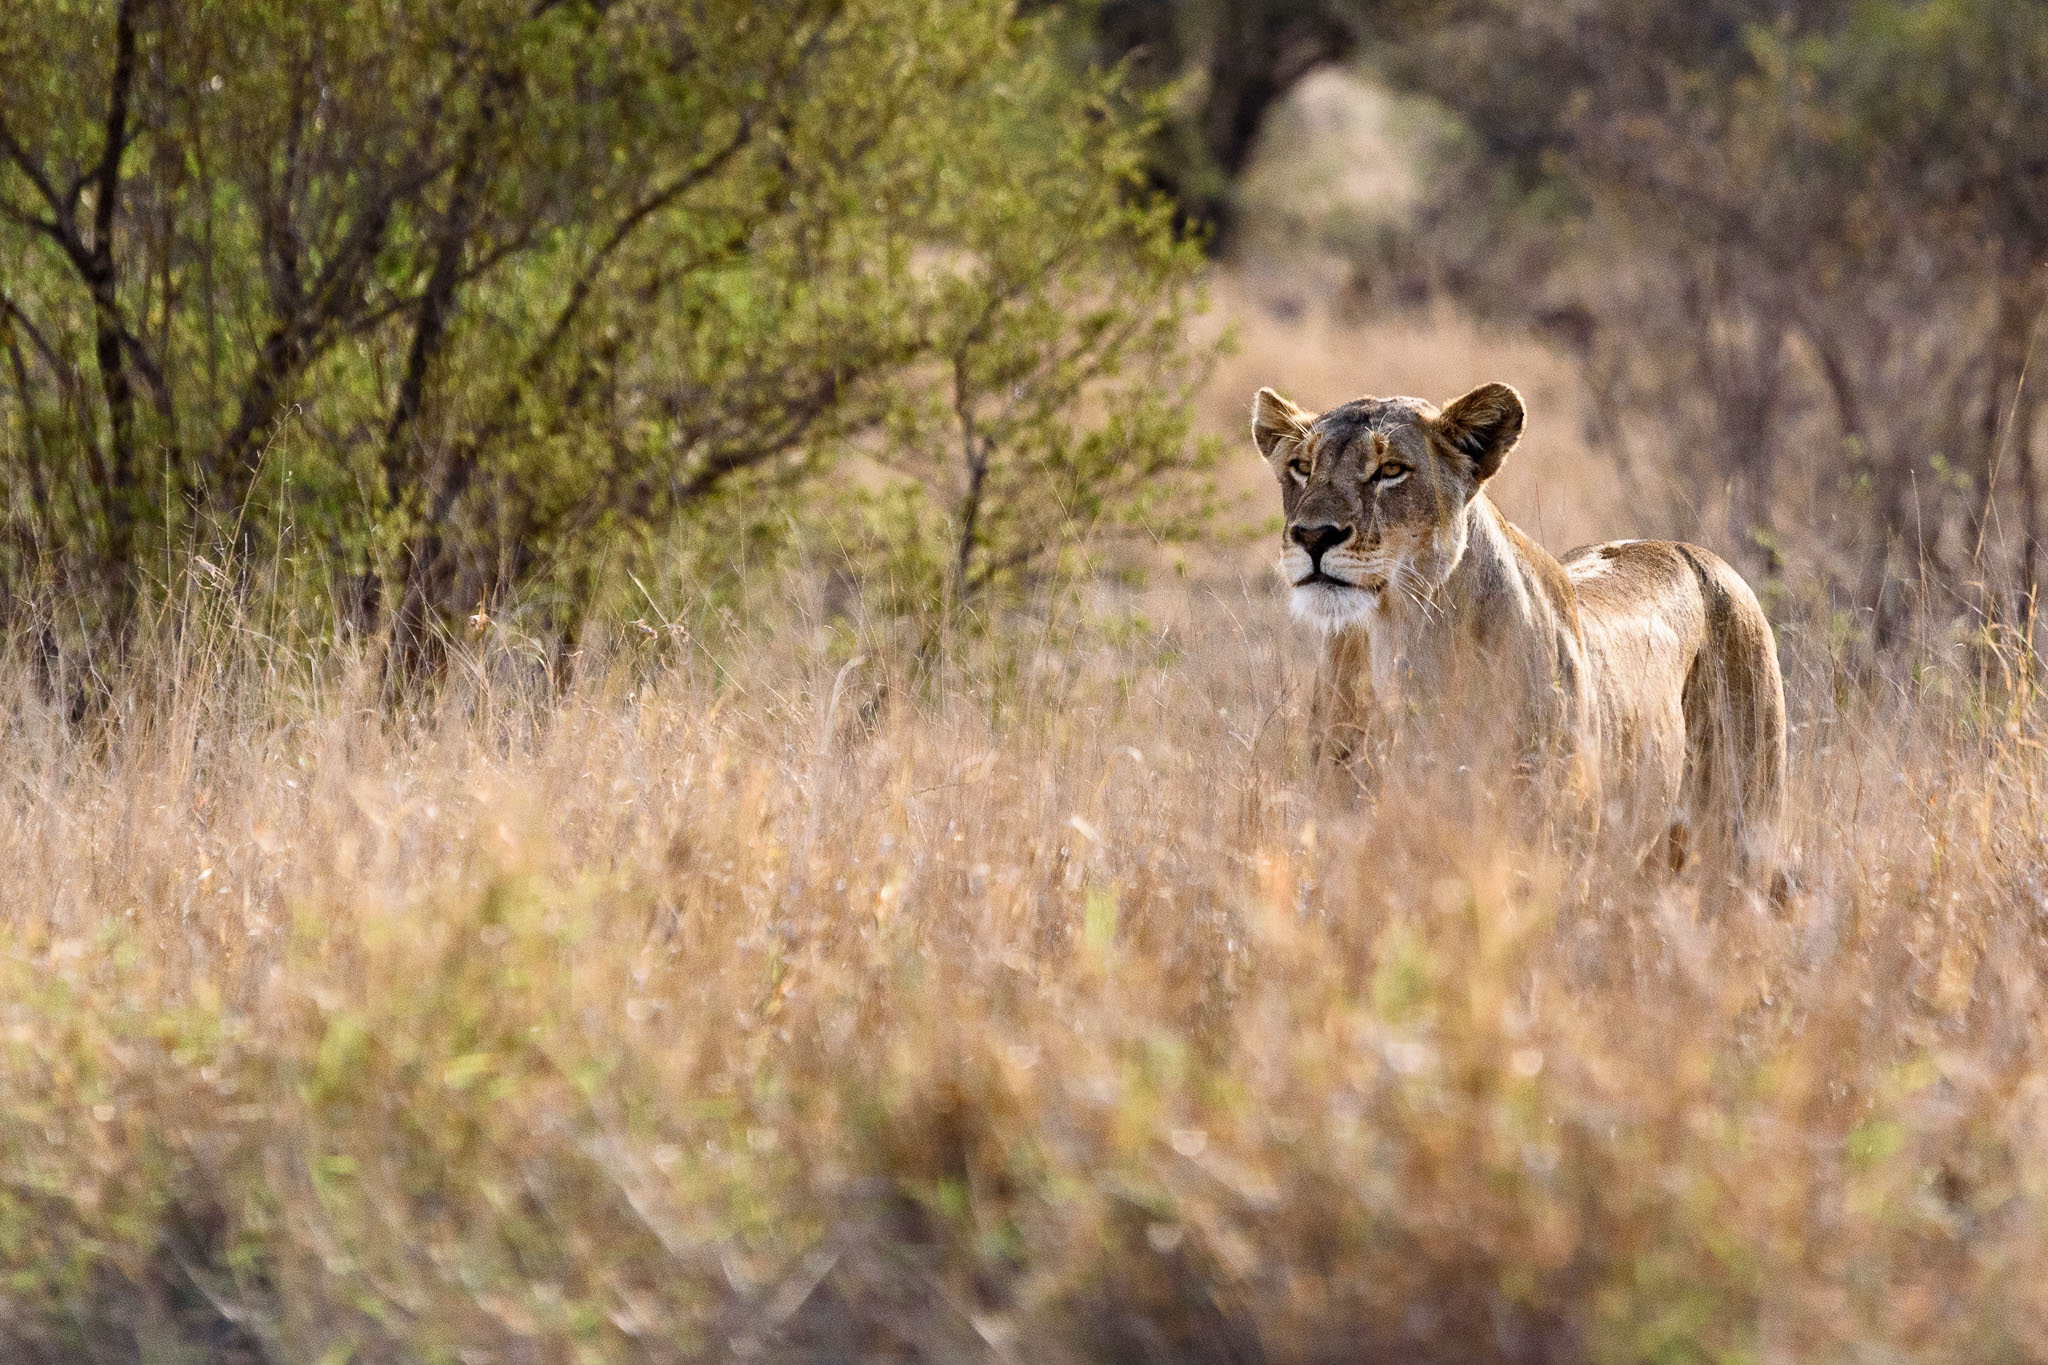 This lioness was a little bit isolated from her pride but they were not too far away. It was just the long grasses that hide them so well when they are hunting that prevented me from photographing the others.